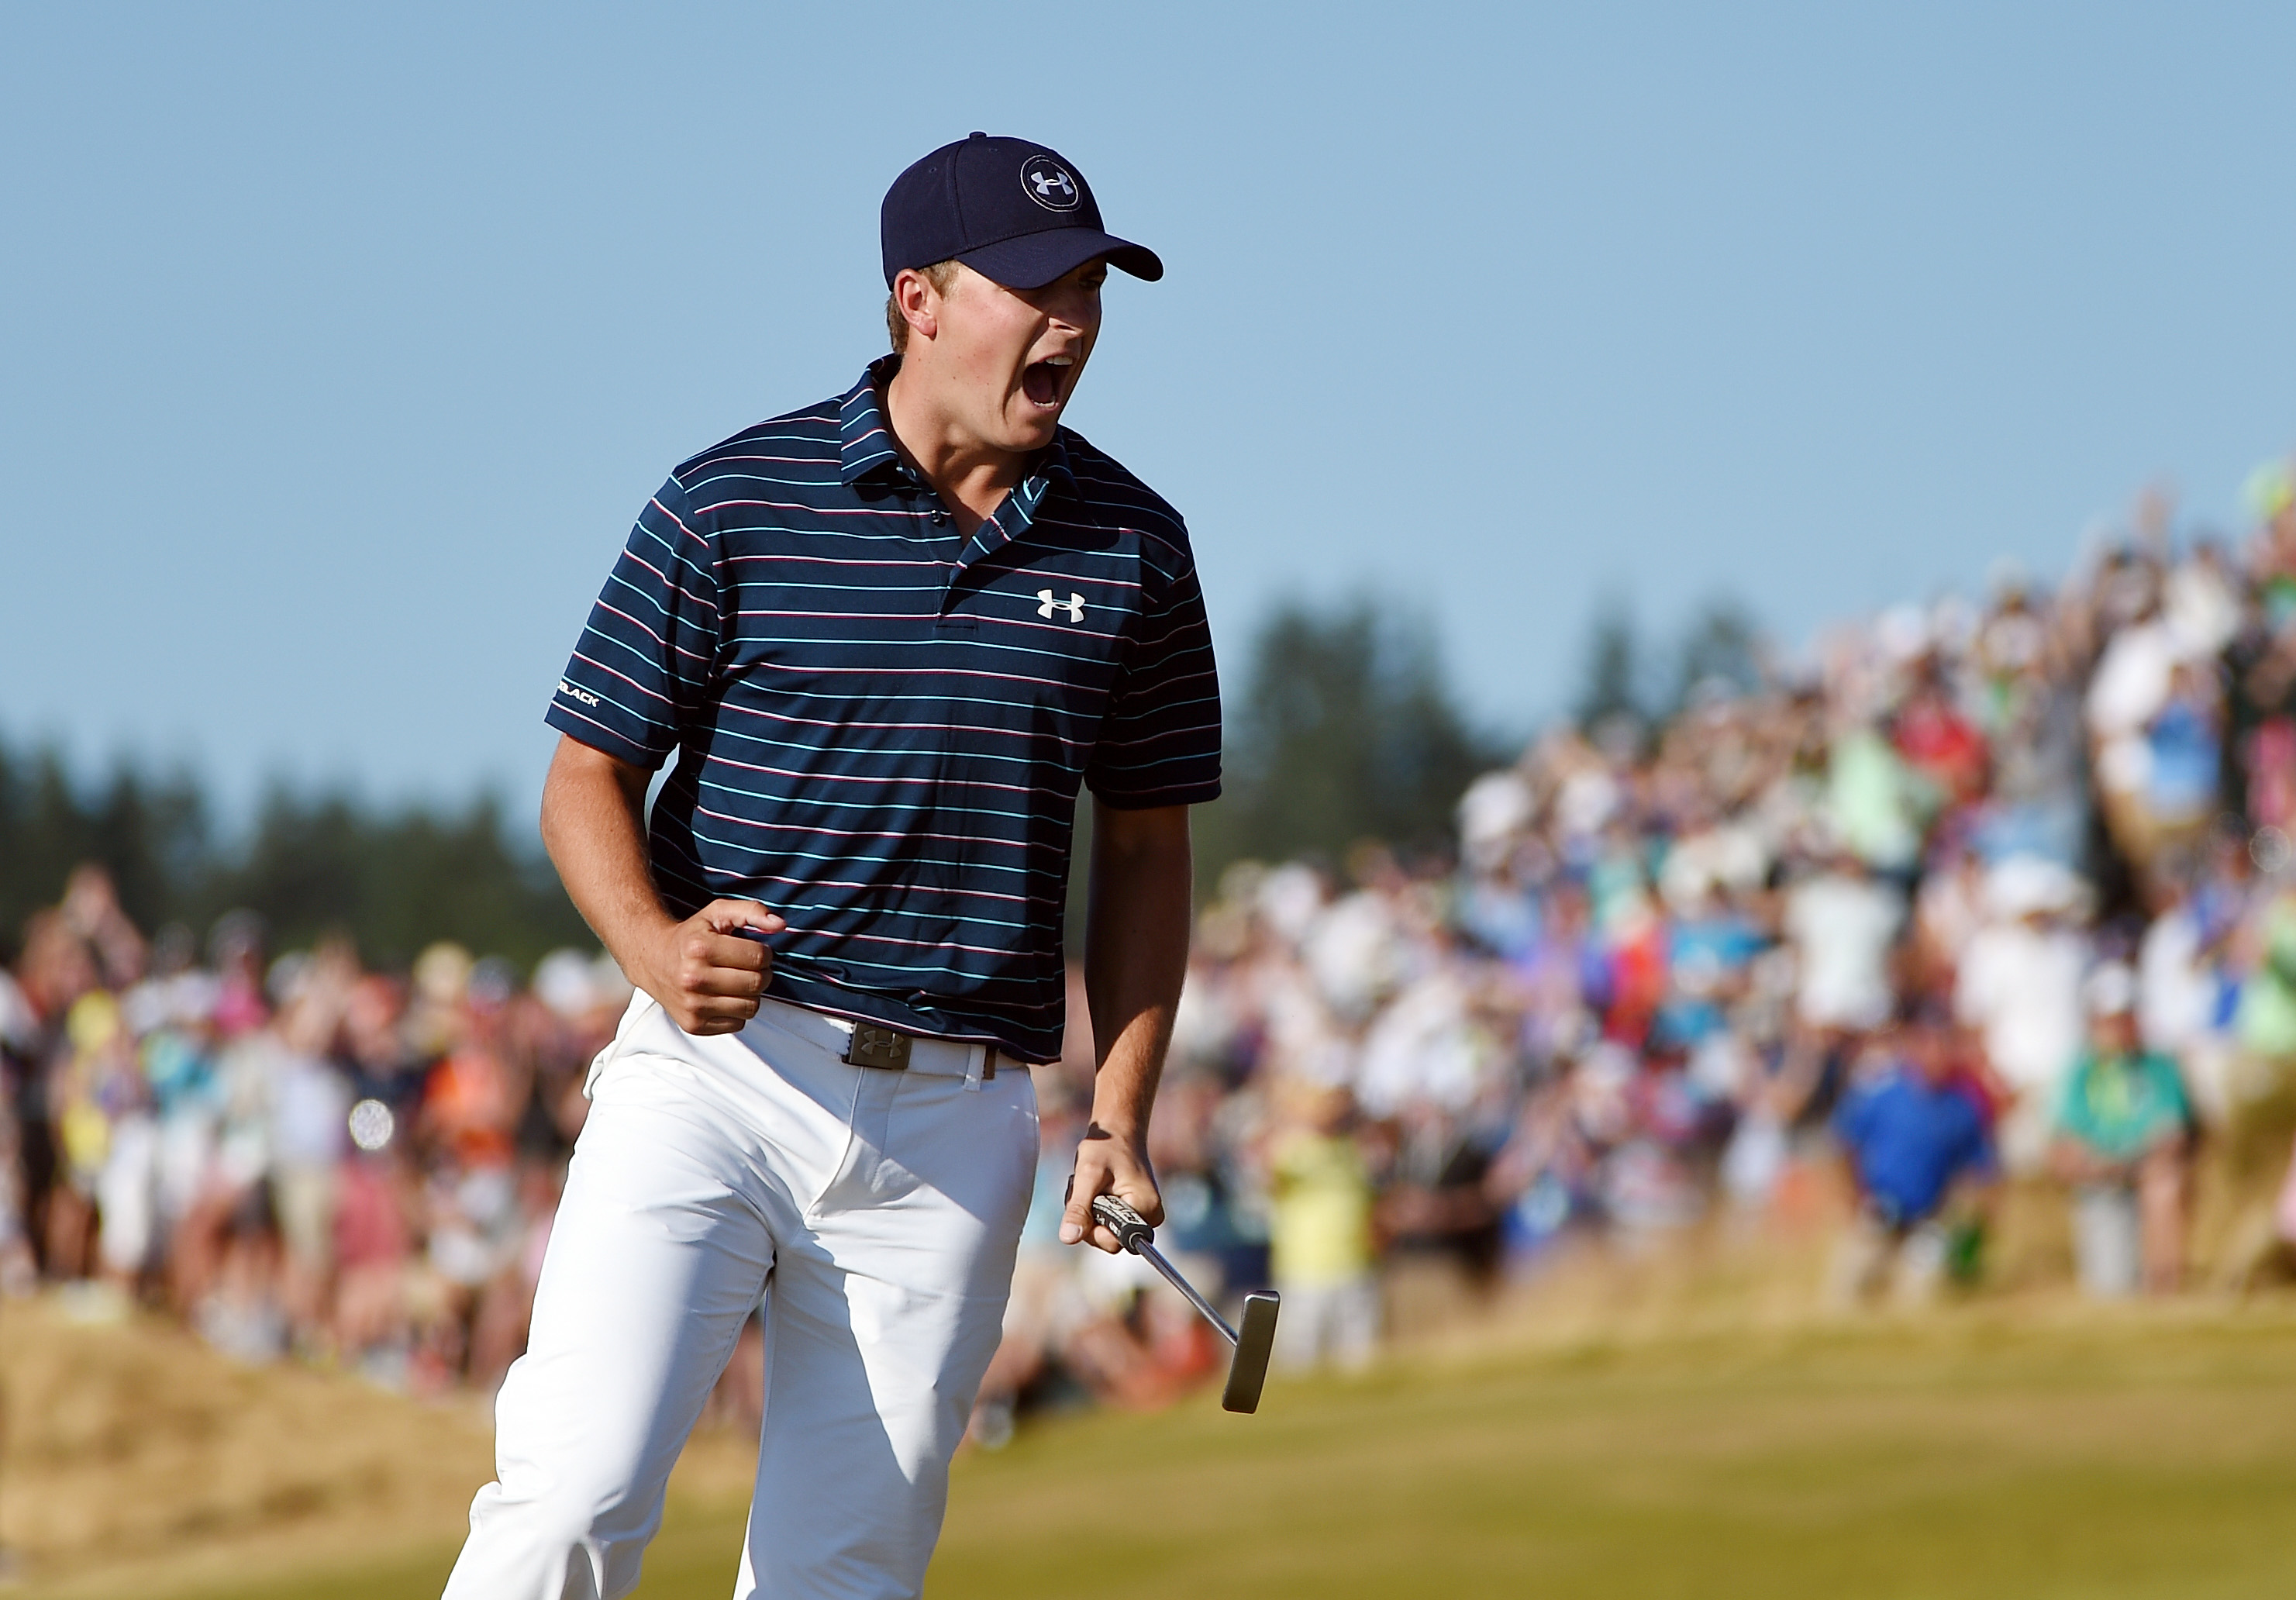 What we learned at the U.S. Open: Jordan Spieth is the golden child and Rory McIlroy's new rival